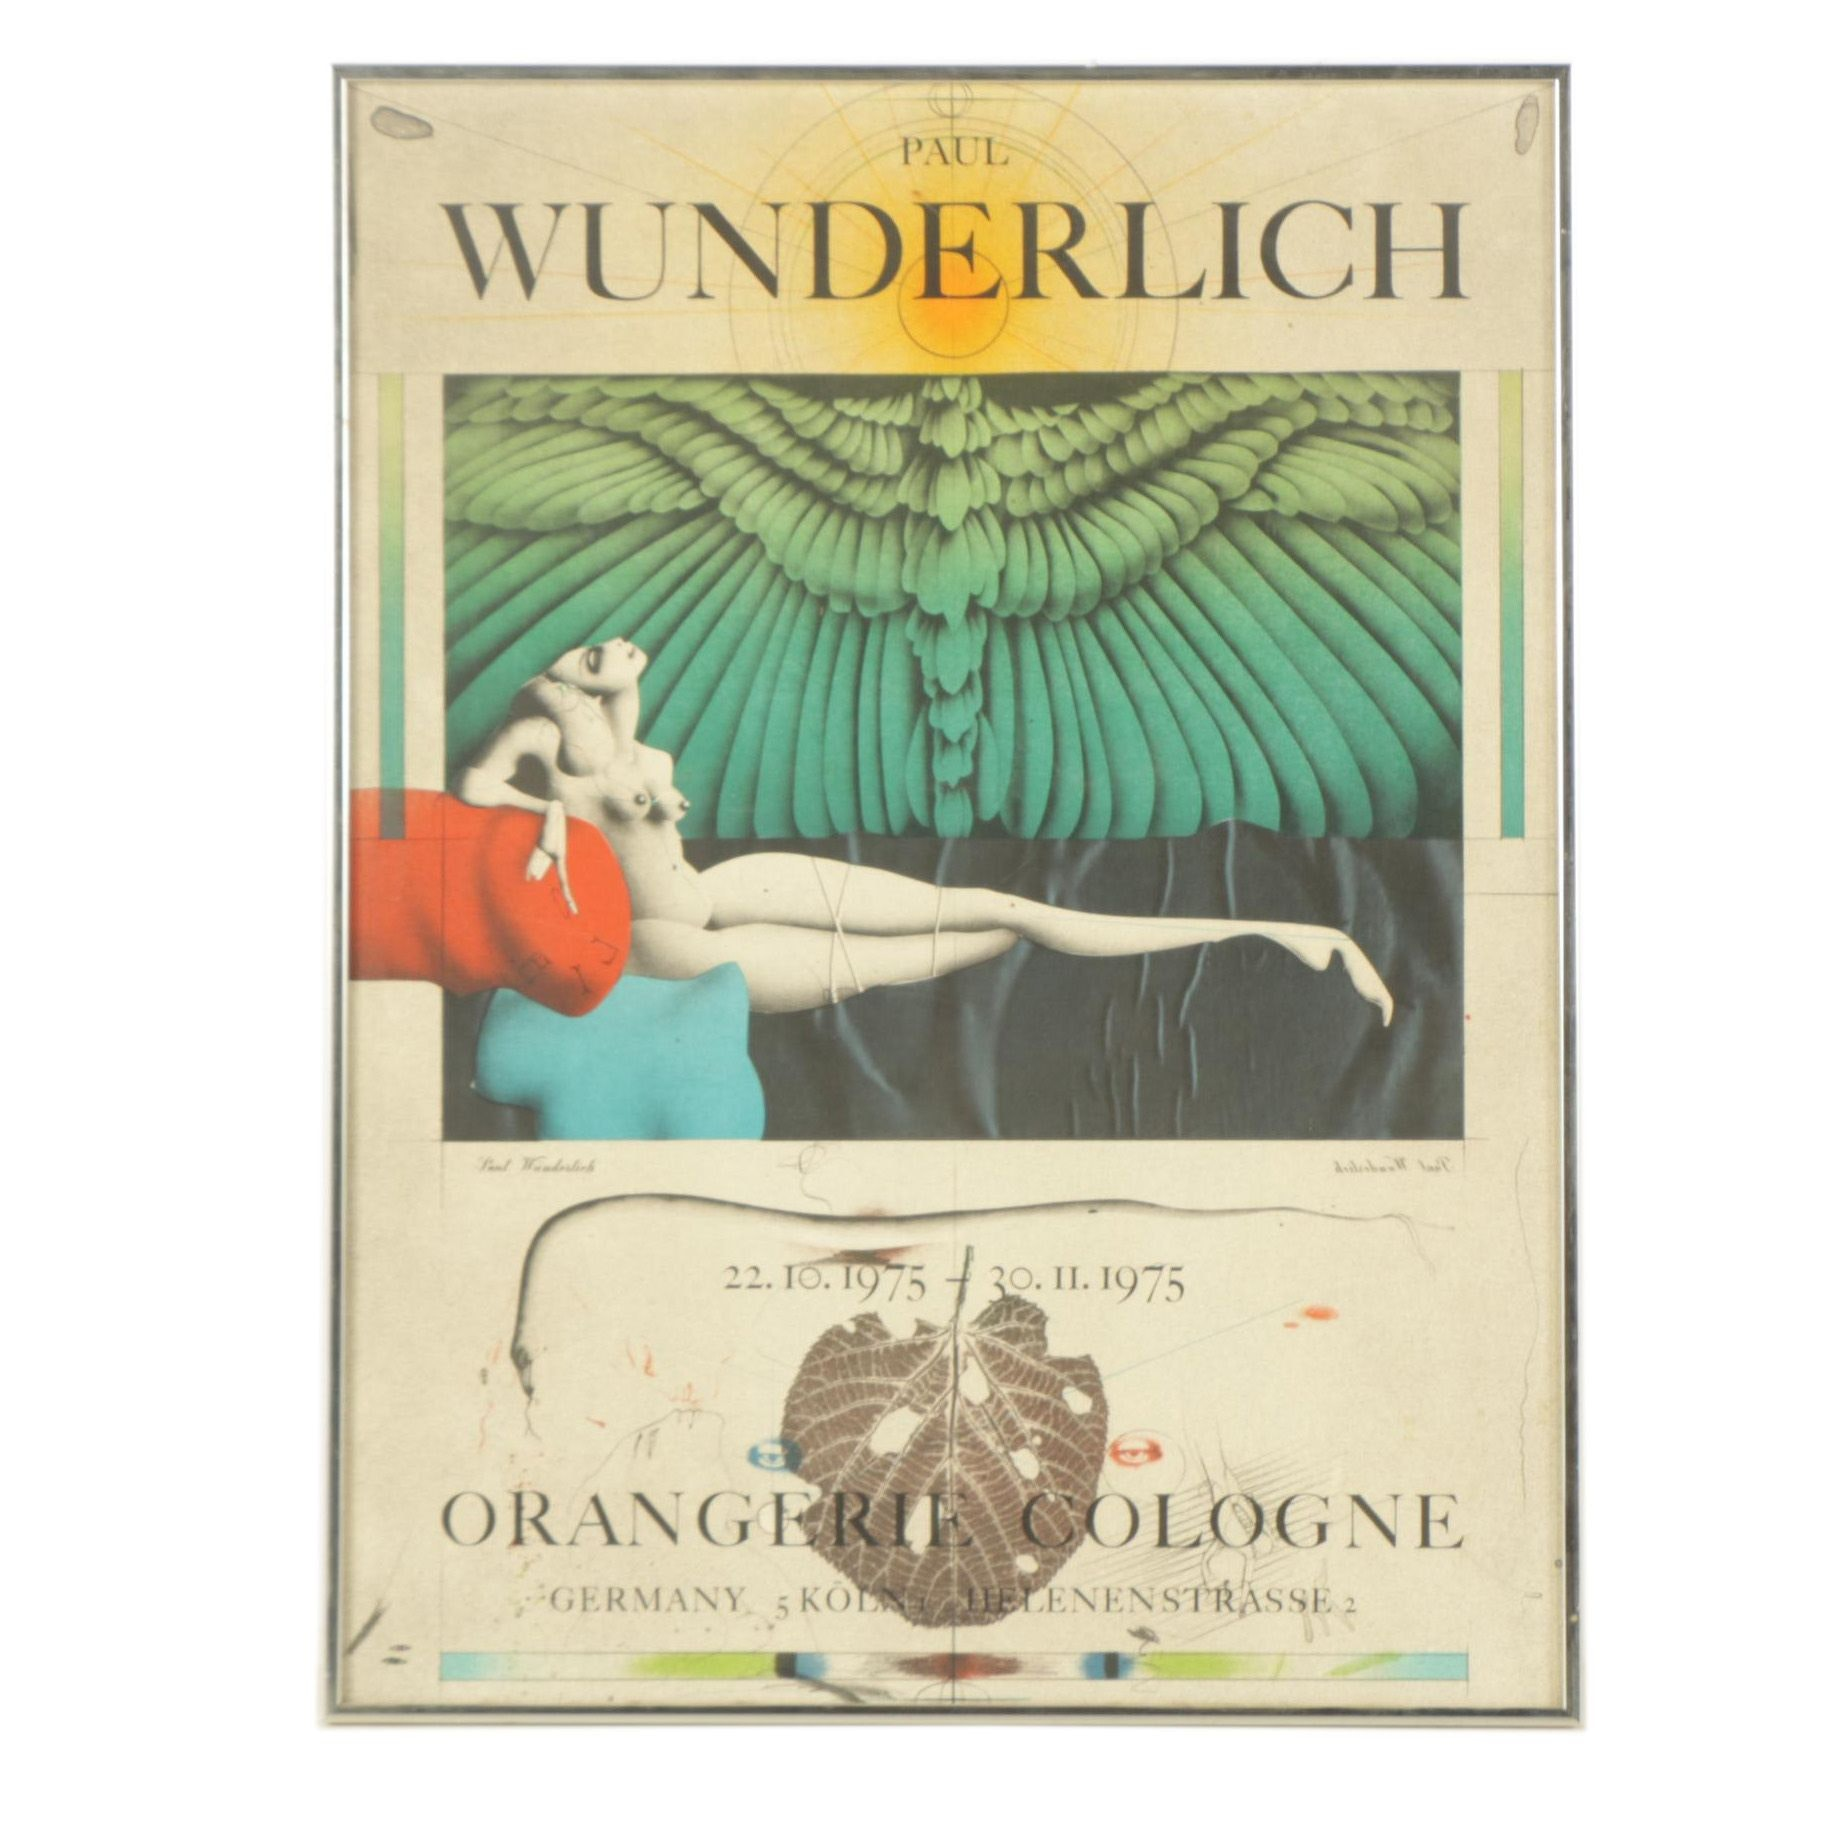 Color Lithograph Poster After Paul Wunderlich